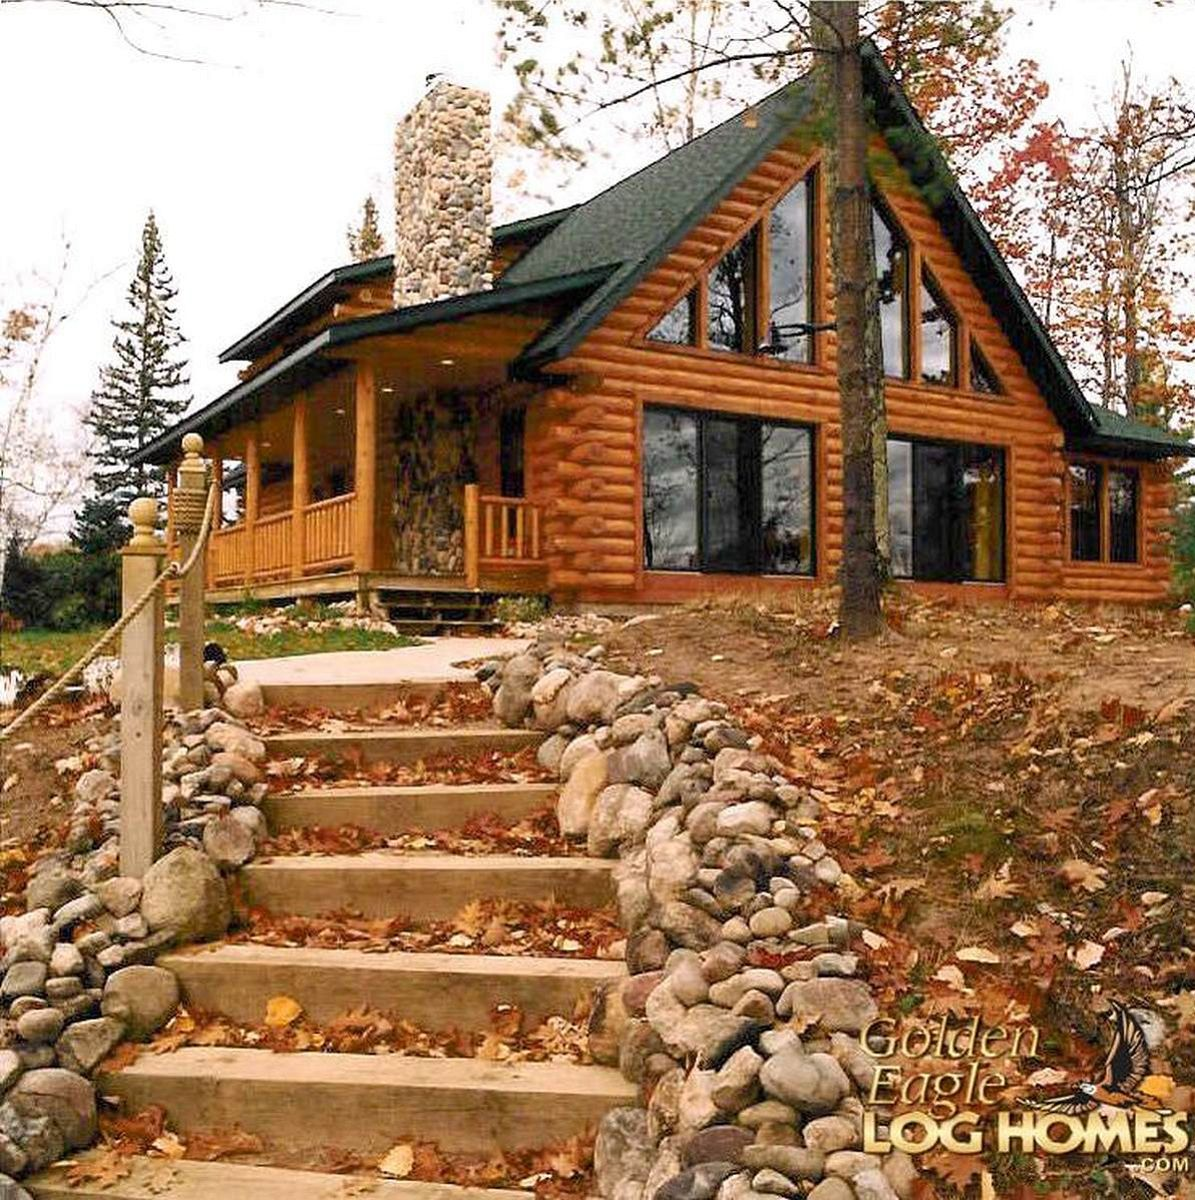 Log home by golden eagle log homes golden eagle log logs for Log and stone homes